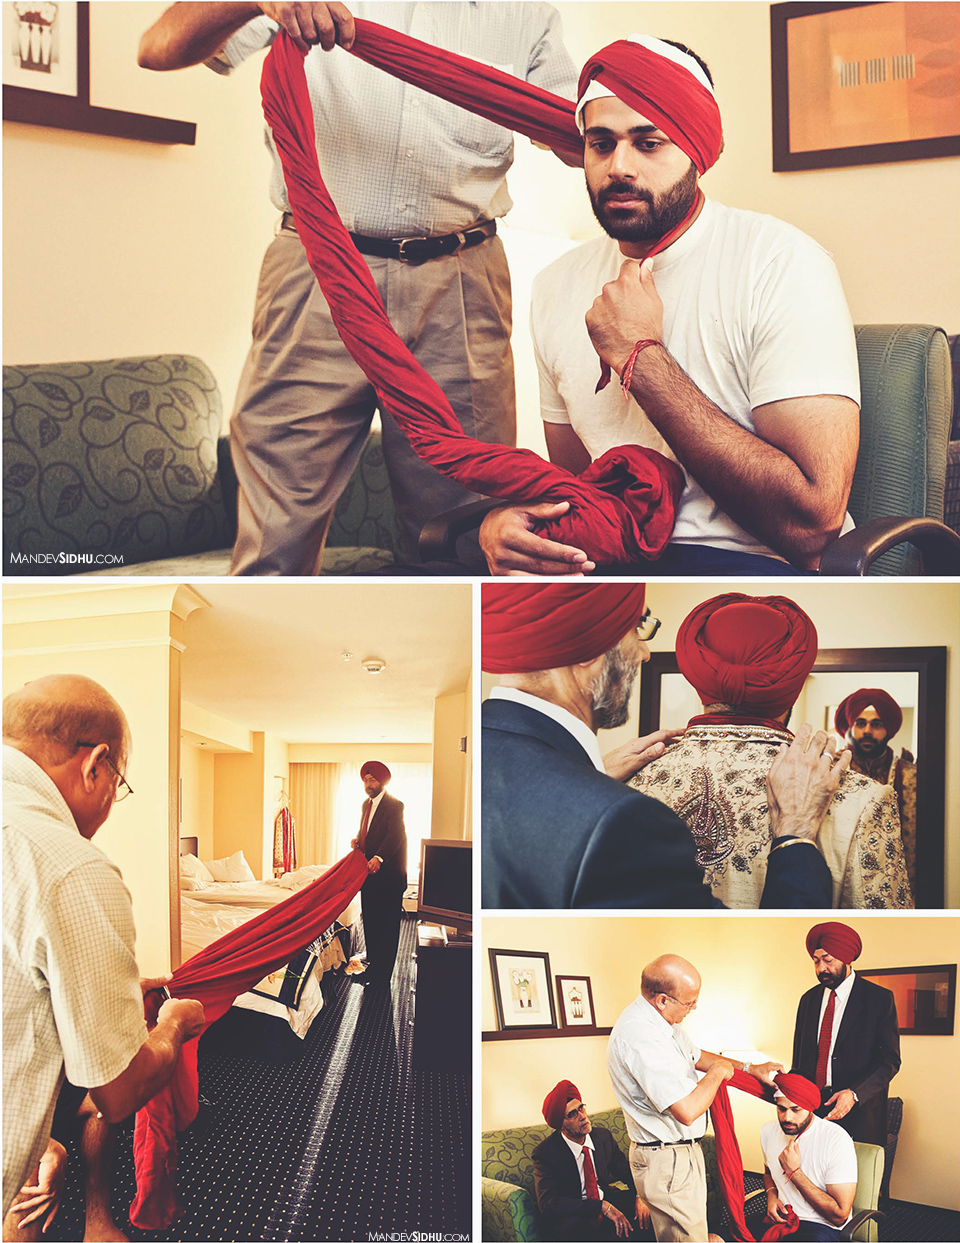 Tying the red turban on groom